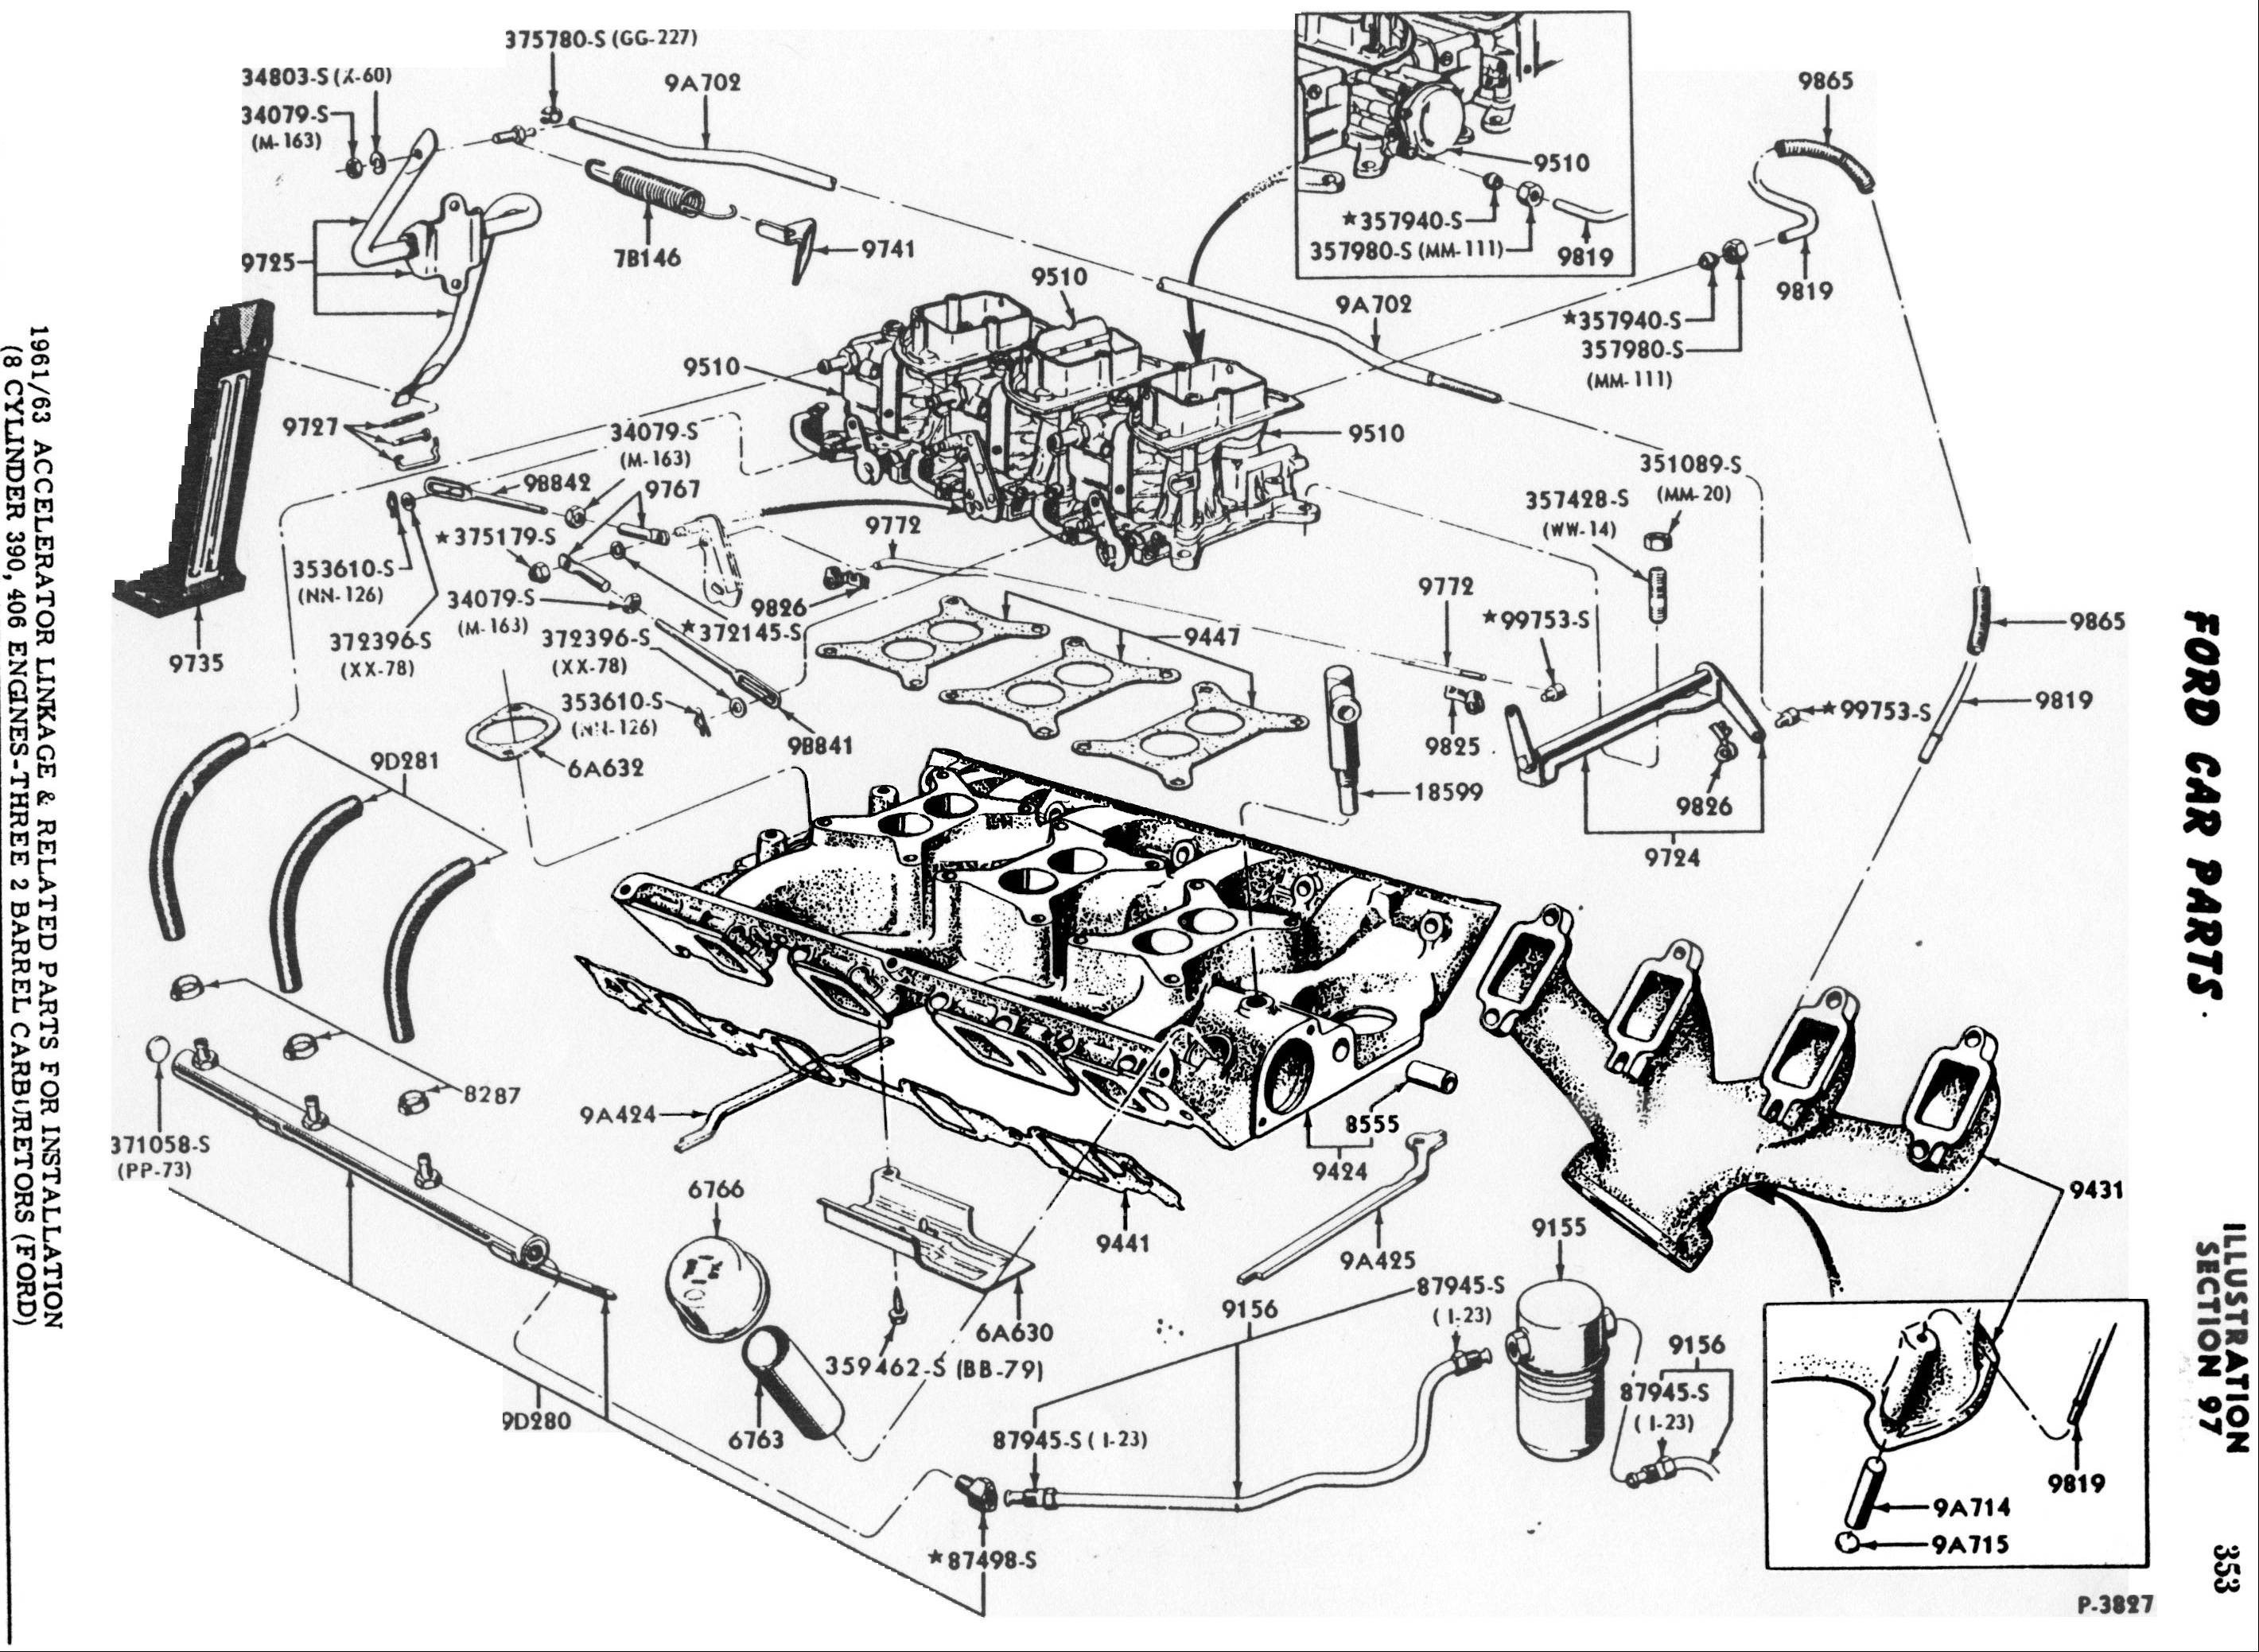 Ford Motor Parts Diagram Enthusiast Wiring Diagrams u2022 Ford Taurus Parts Diagram Ford 300 Parts